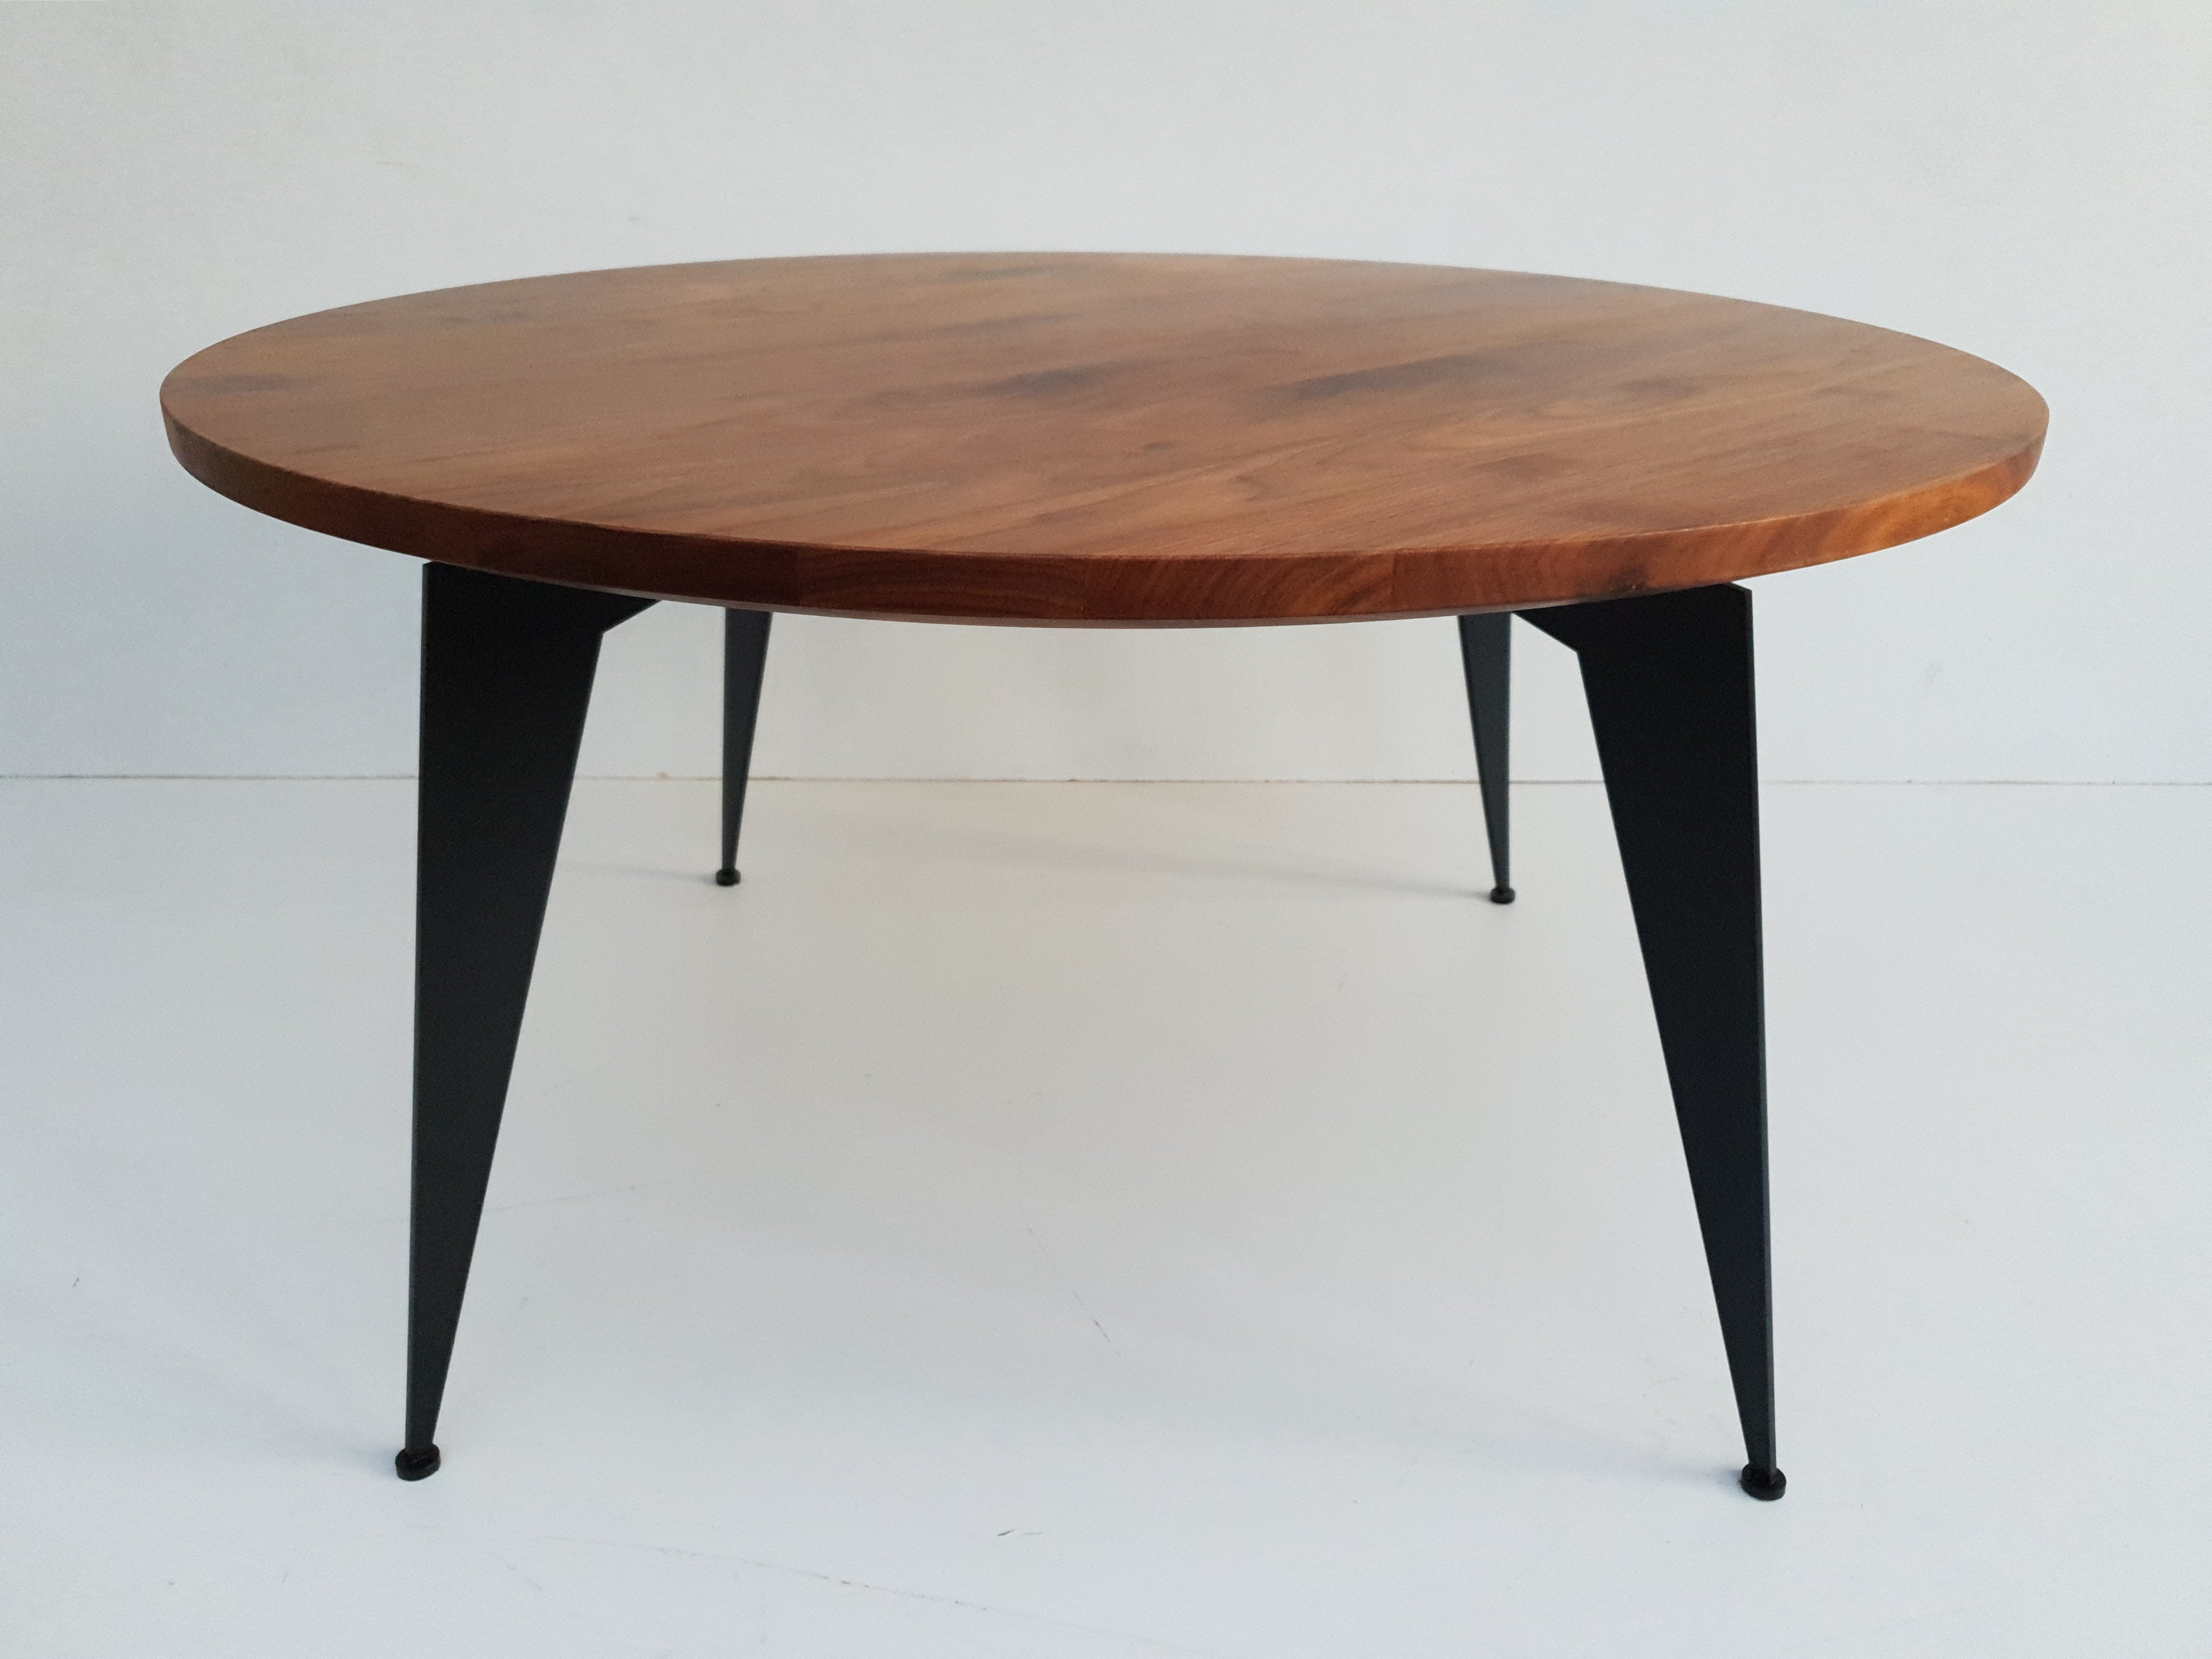 SKOVLUND - coffee table, walnut wood, Ø90cm